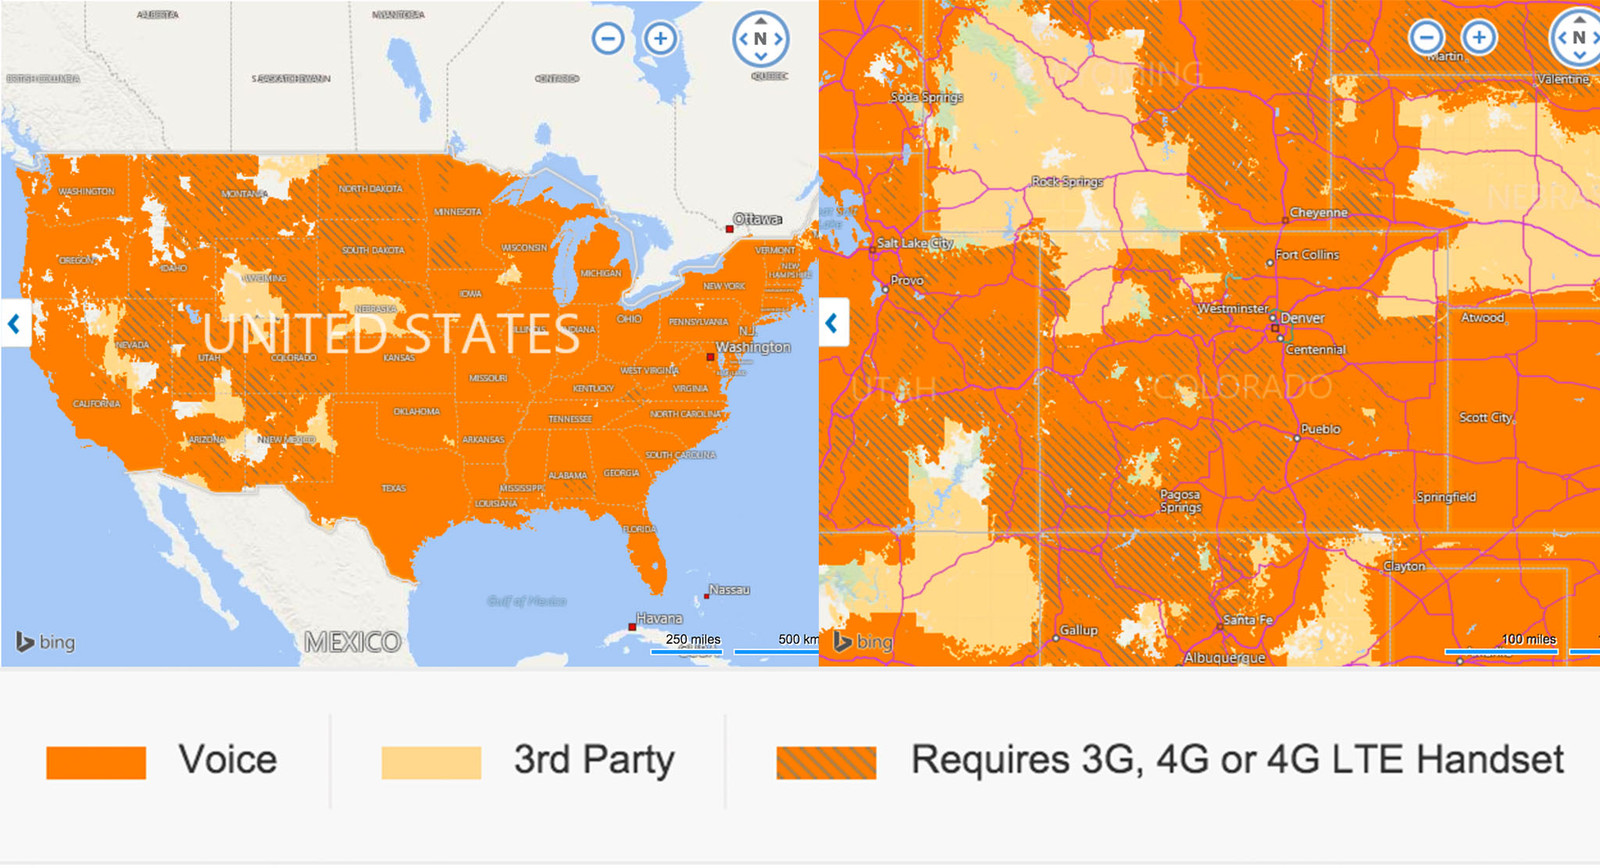 at&t fleet management signal coverage map